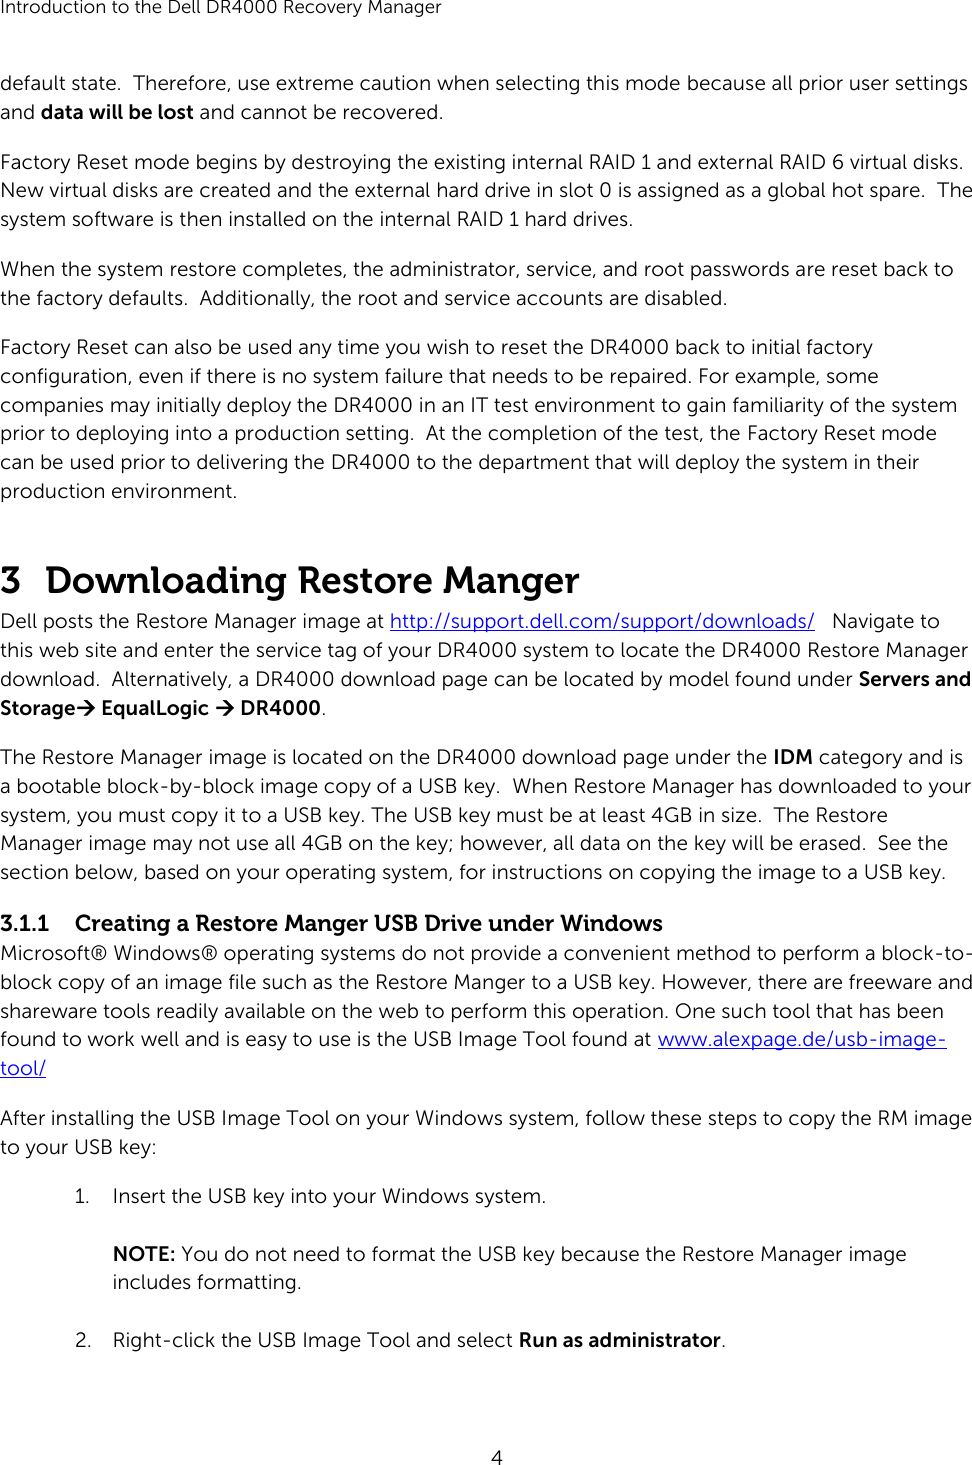 Dell Introduction To The DR4000 Restore Manager 1508079063dell